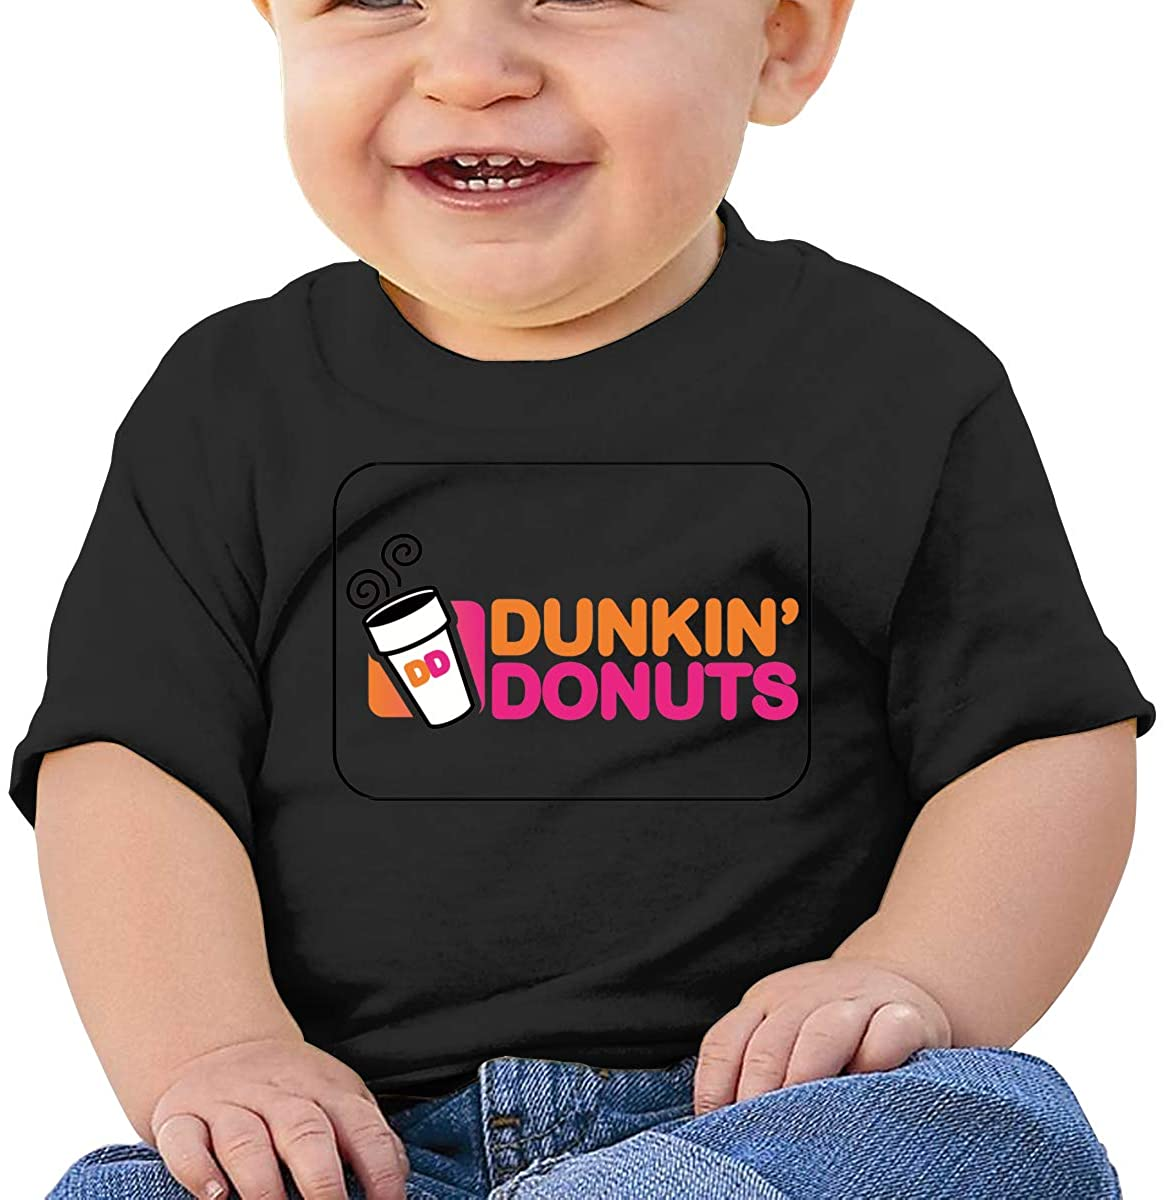 Dunkin-Donuts 18 Months Baby Casual Fashion Short Sleeve T-Shirt Printing Design Baby Tee Black